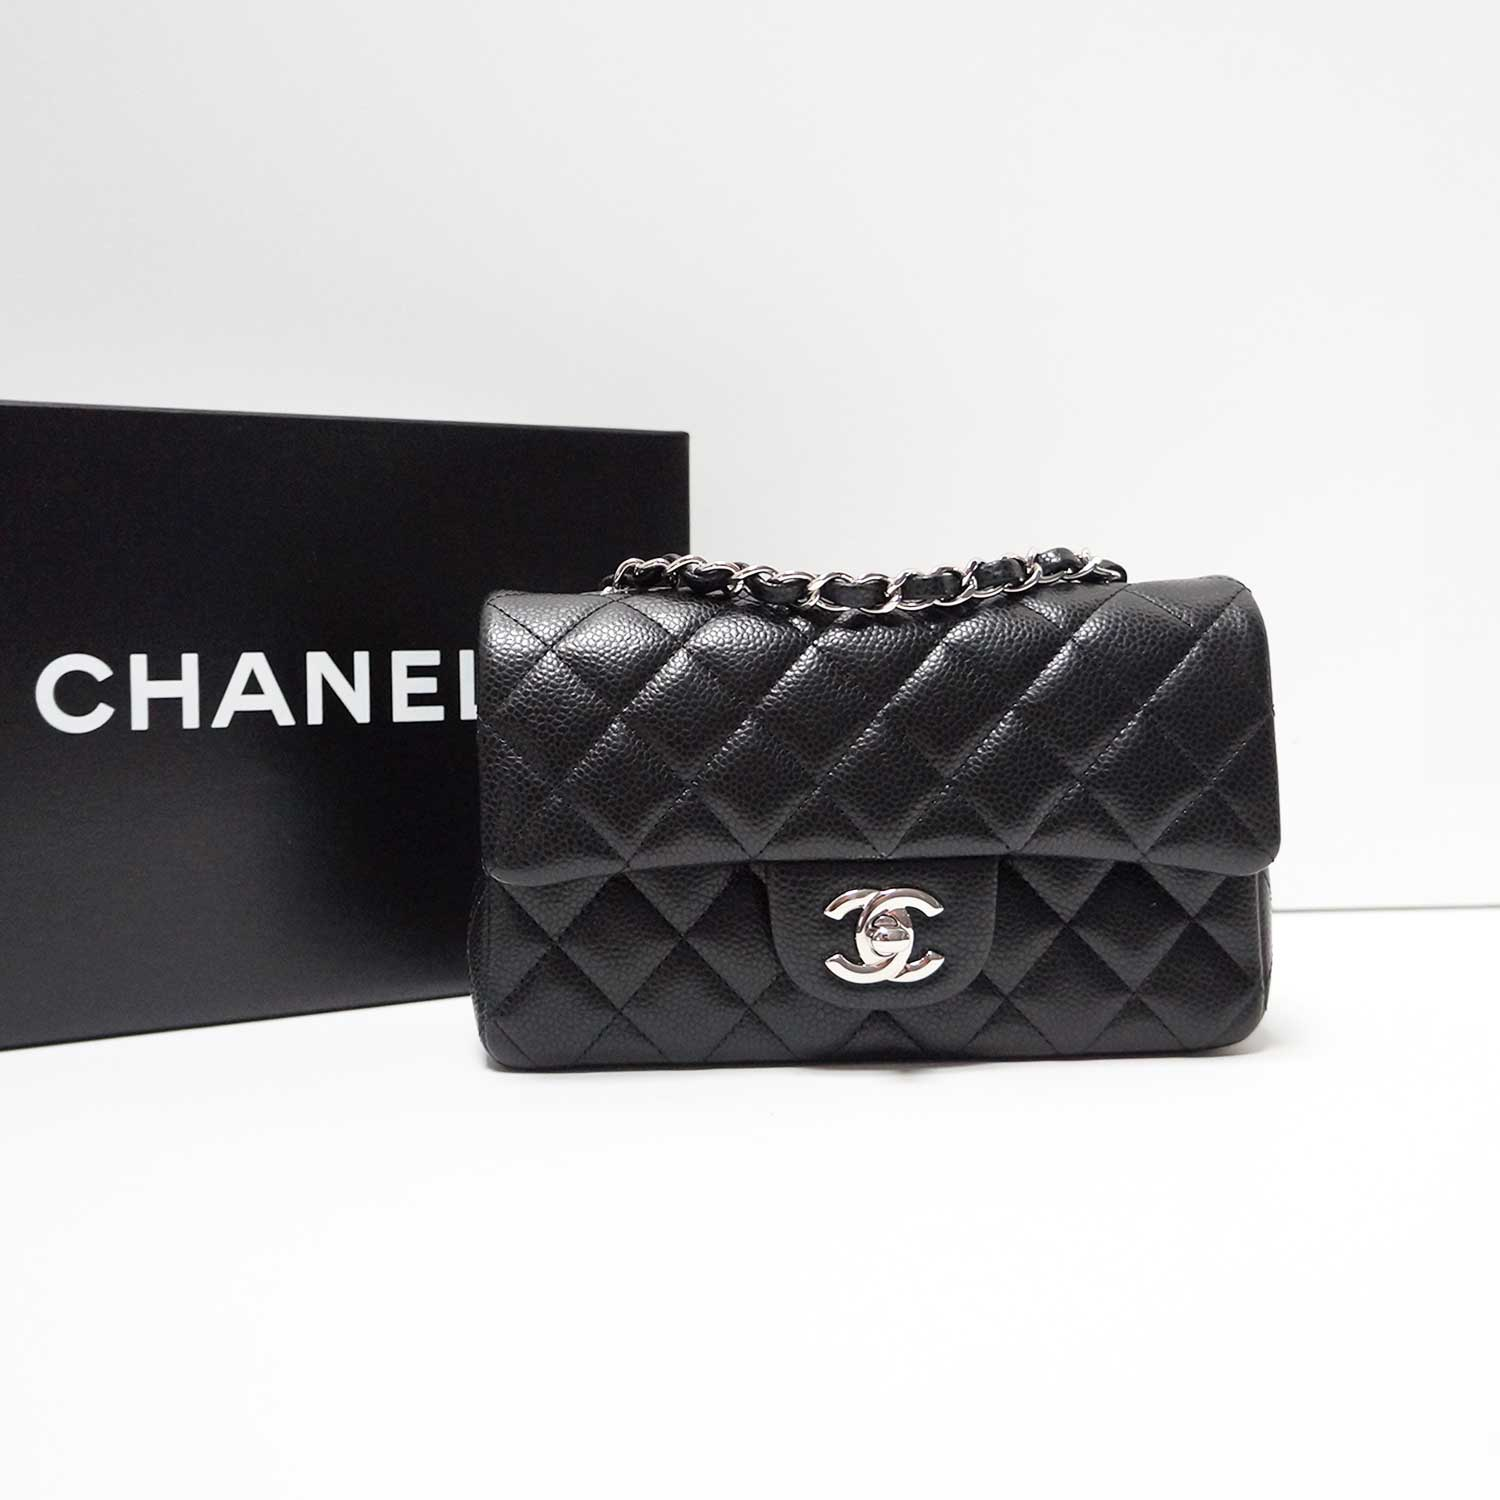 0b329261c529 Chanel Black Caviar Leather Classic Mini Crossbody Flap Bag | | My ...